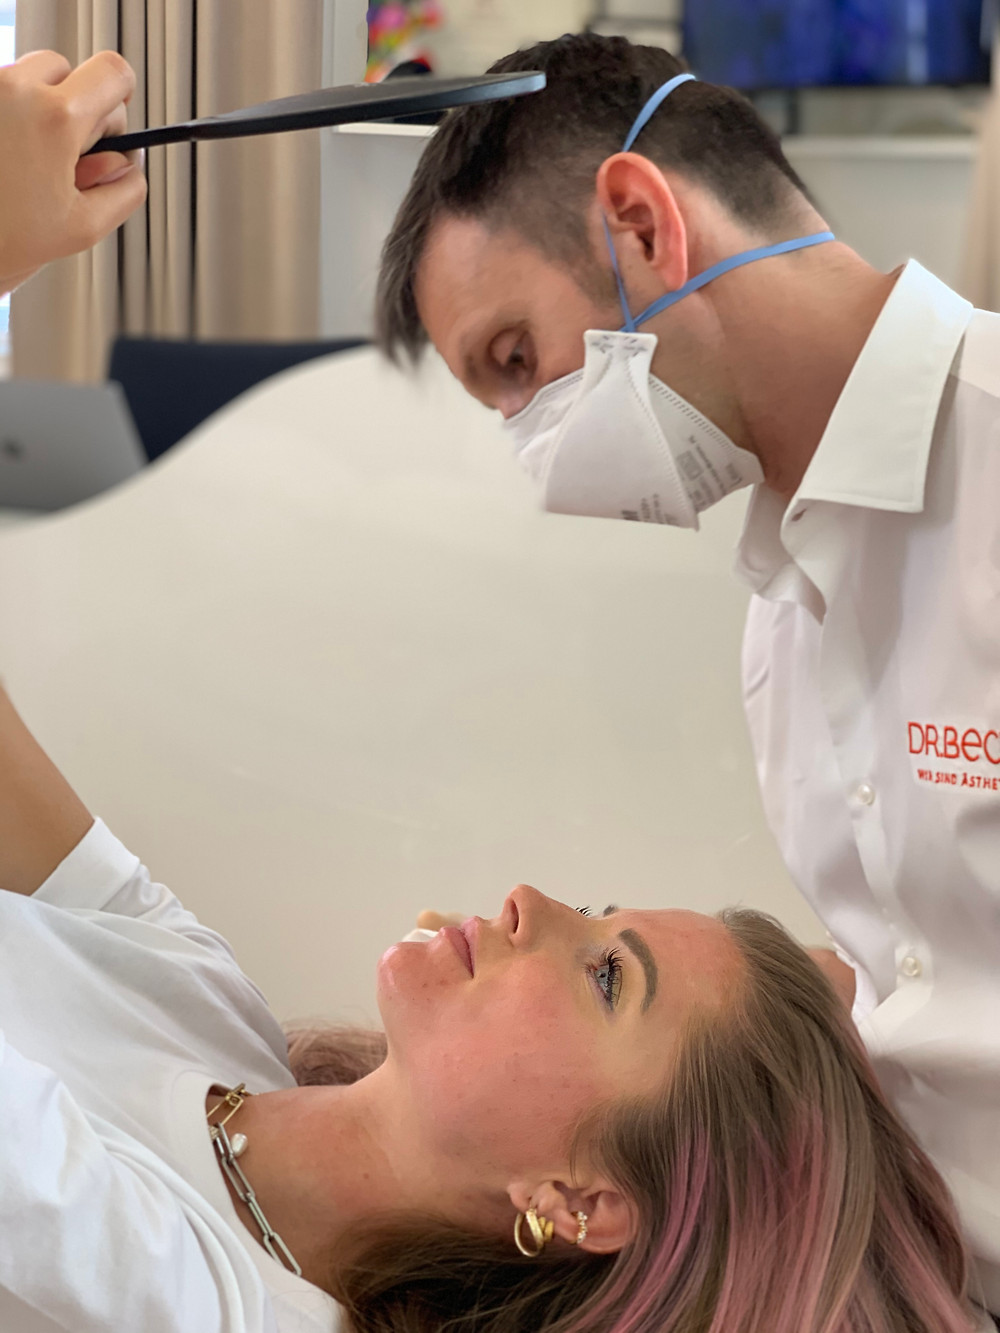 #VAMPIREFACIAL LIFTING MIT EIGENBLUT